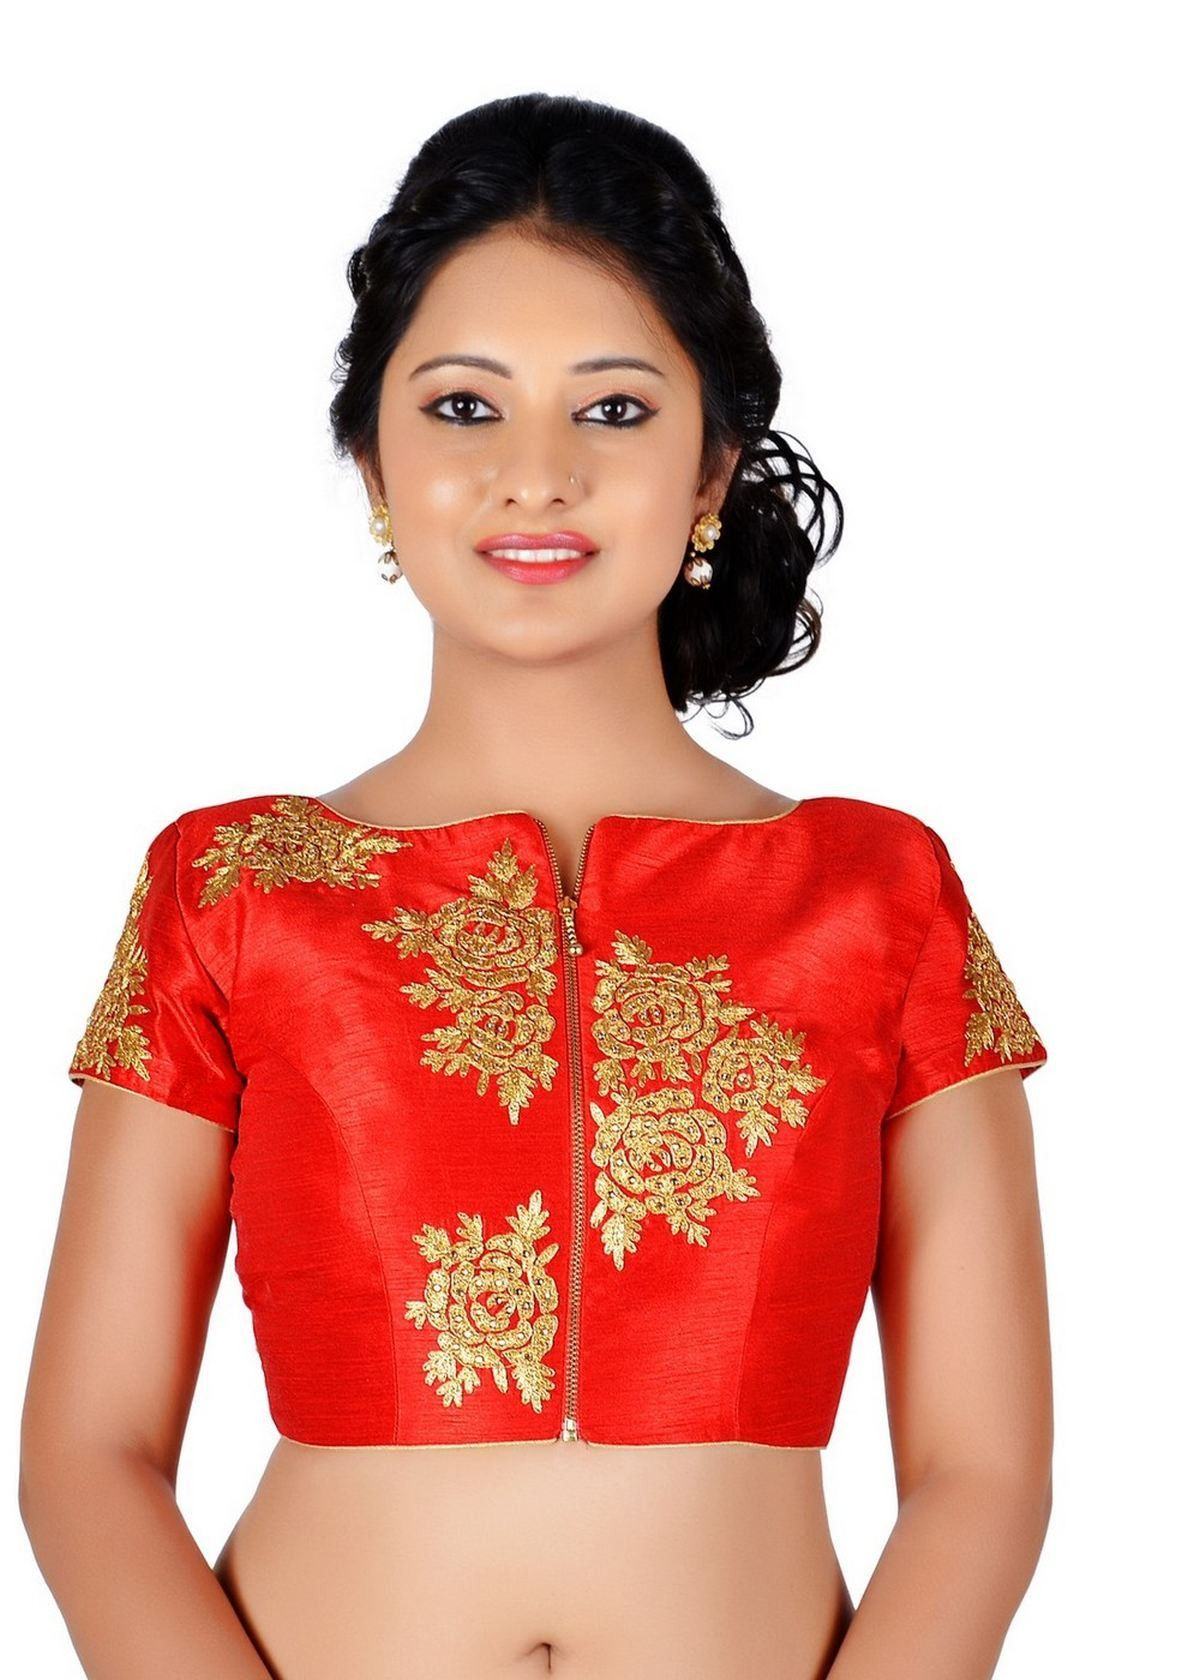 NEW STUNNING READYMADE PARTY WEAR BLOUSE with latest neck